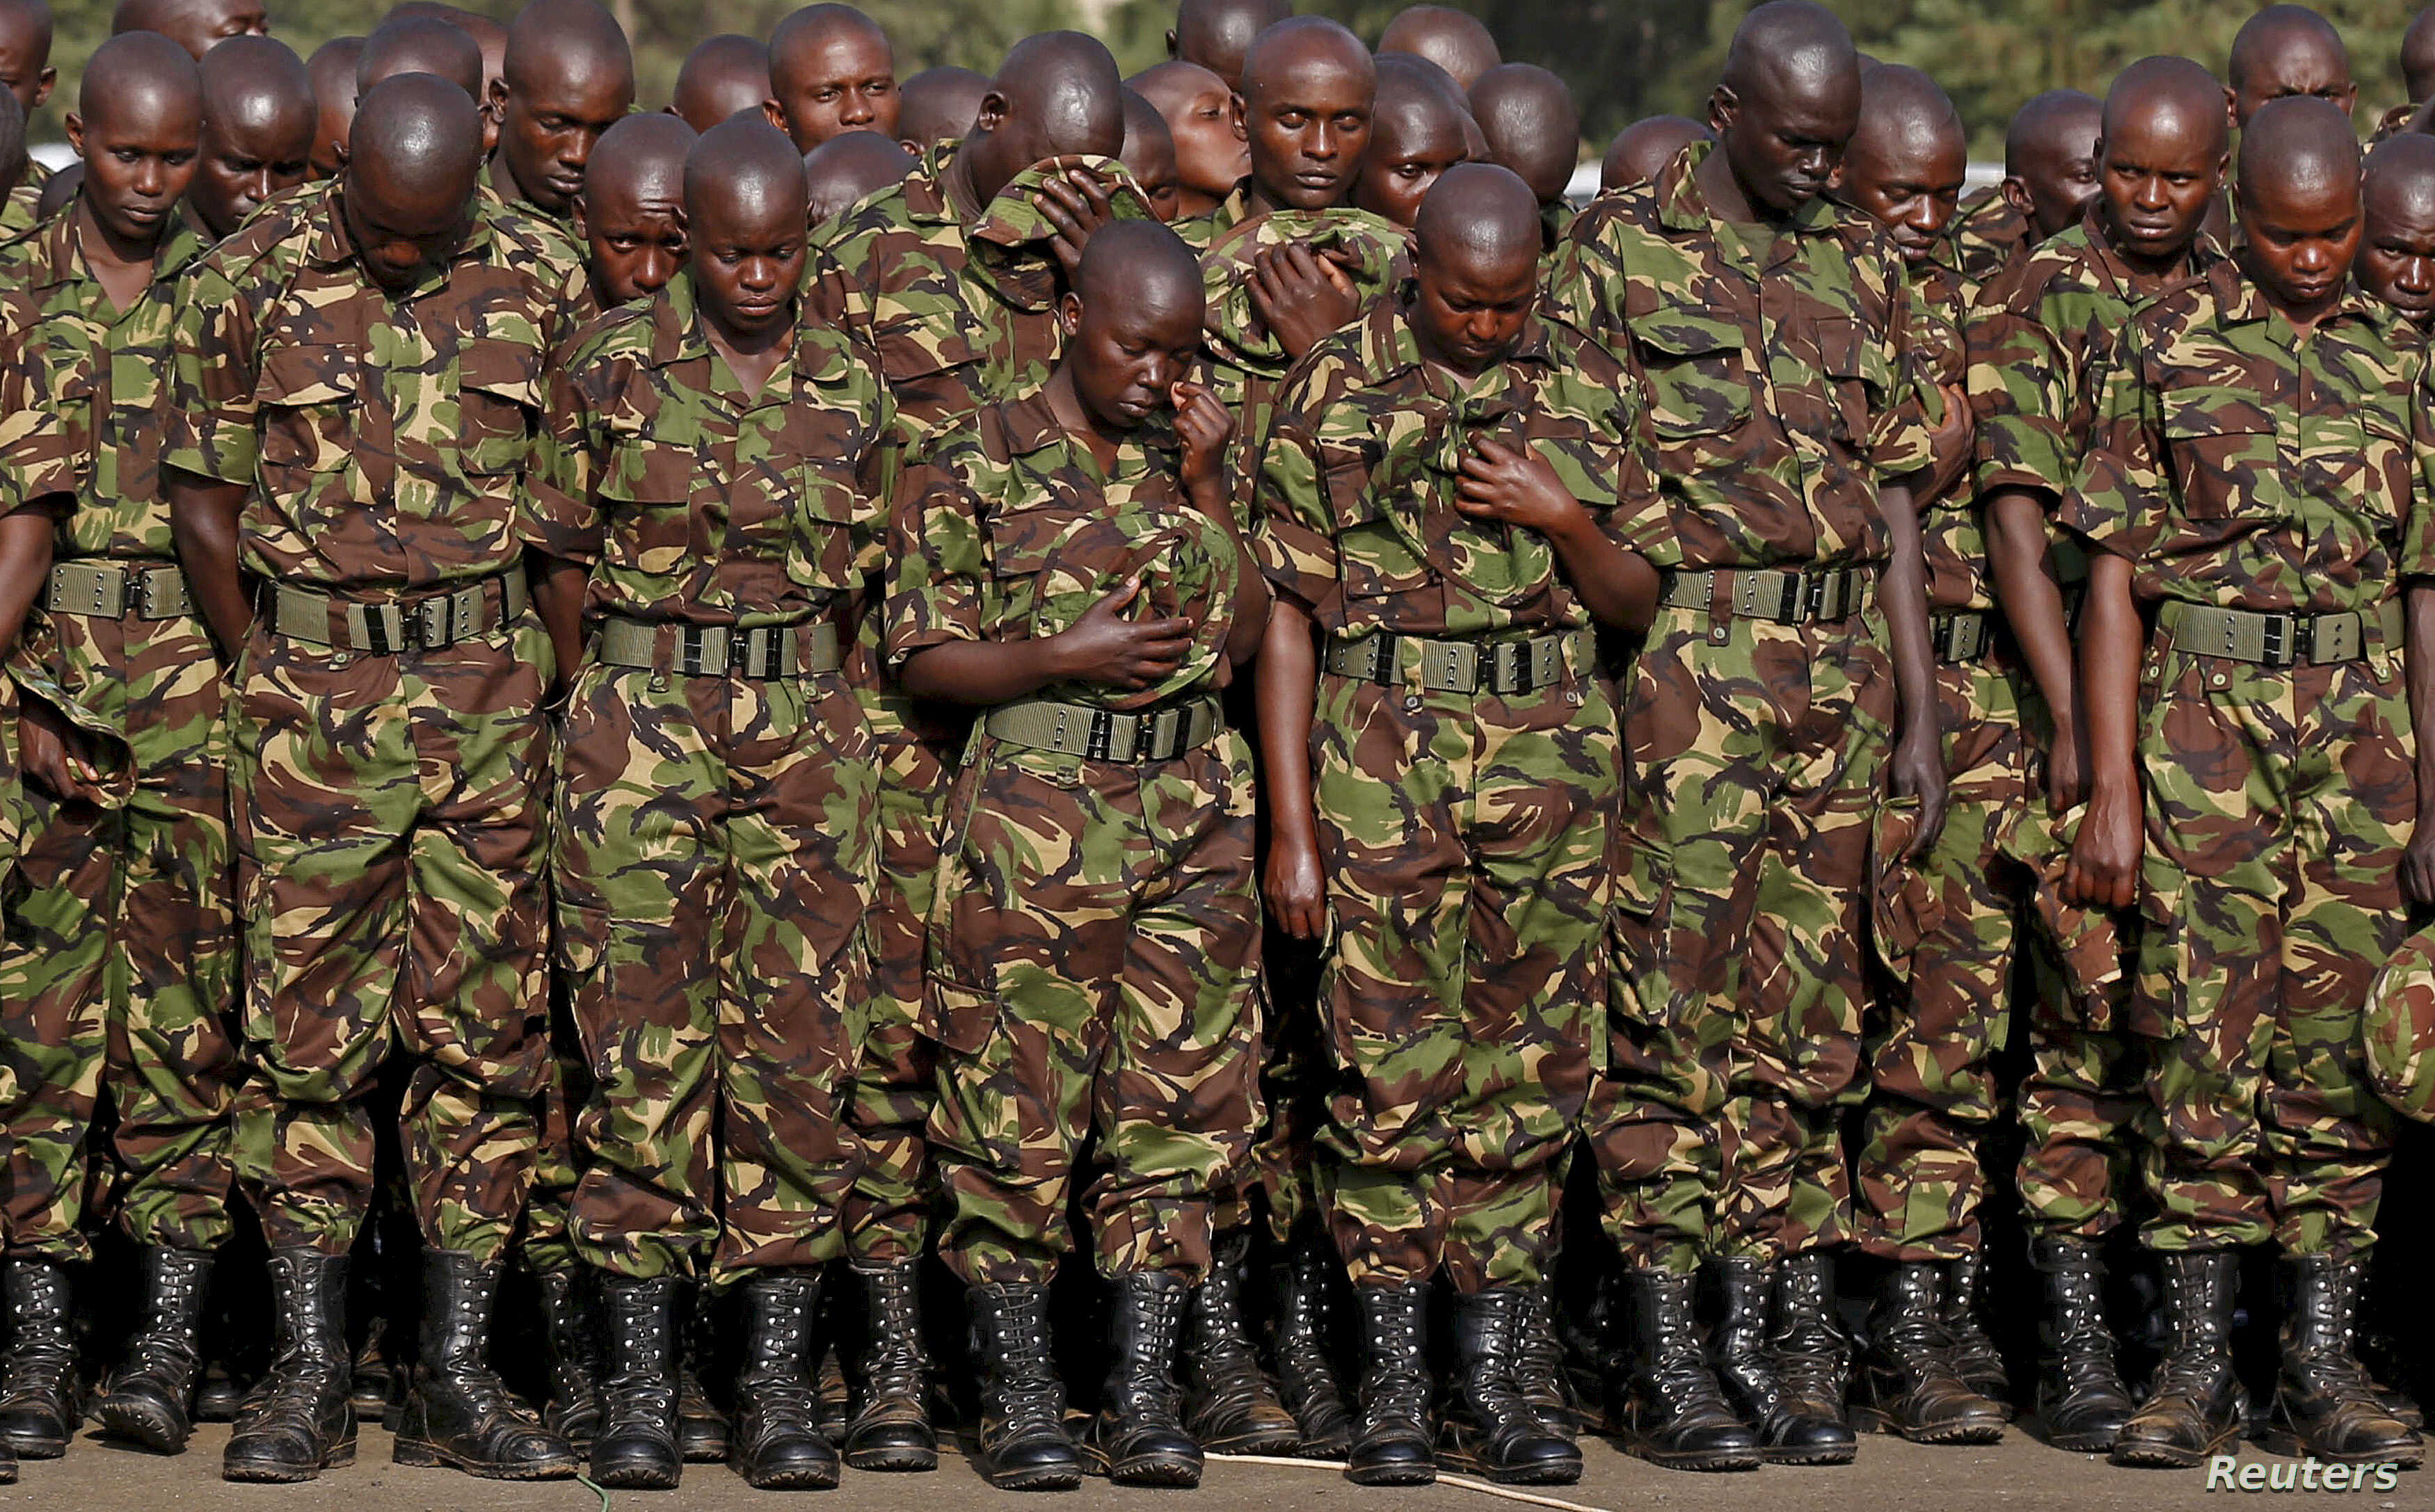 FILE - Members of the Kenya Defence Forces say prayers to pay respects to the Kenyan soldiers serving in the African Union Mission in Somalia (AMISOM), who were killed in El Adde during an attack, at a memorial mass at the Moi Barracks in Eldoret, Ja...